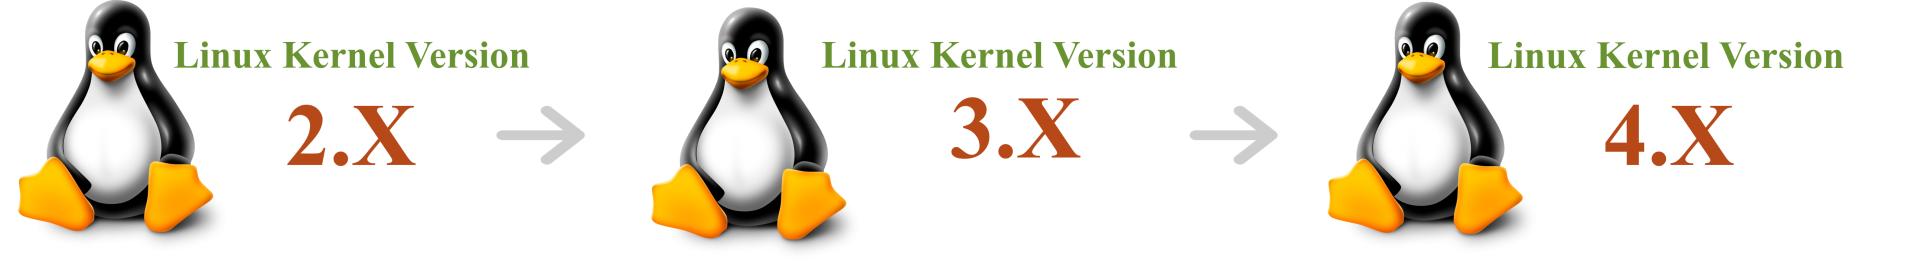 Linux Os Upkit 1